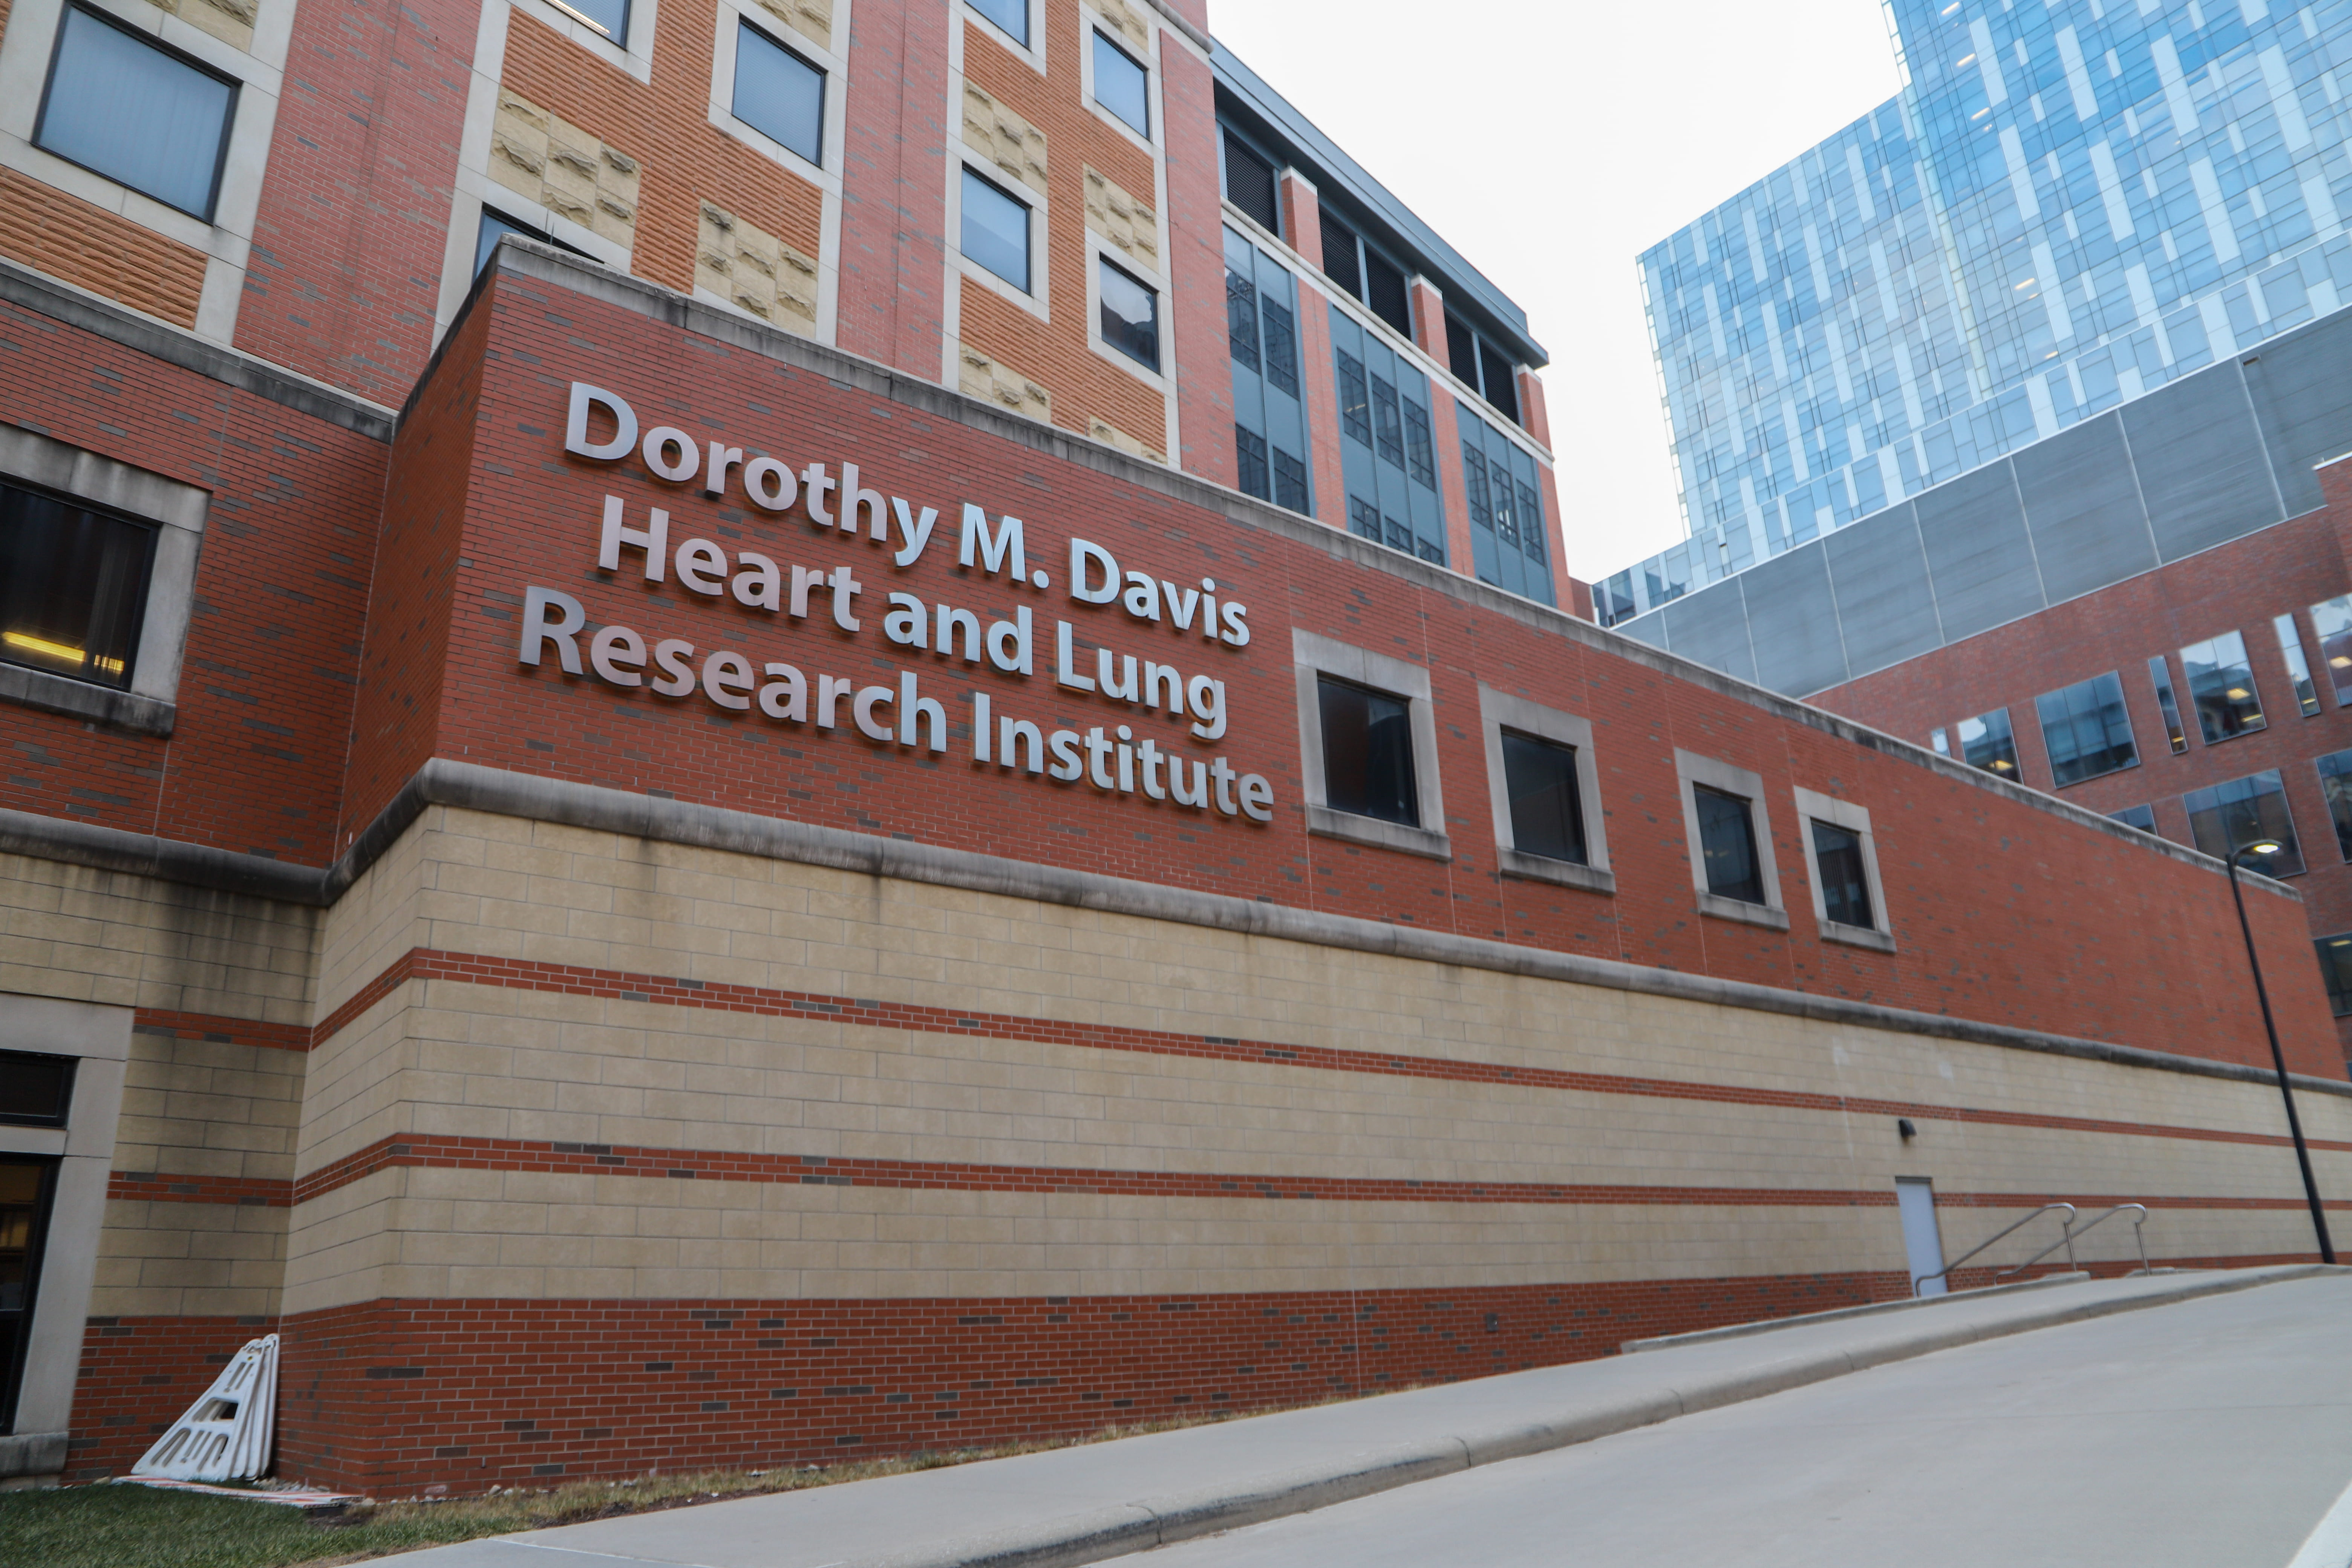 The outside of the Davis Heart and Lung Research Institute